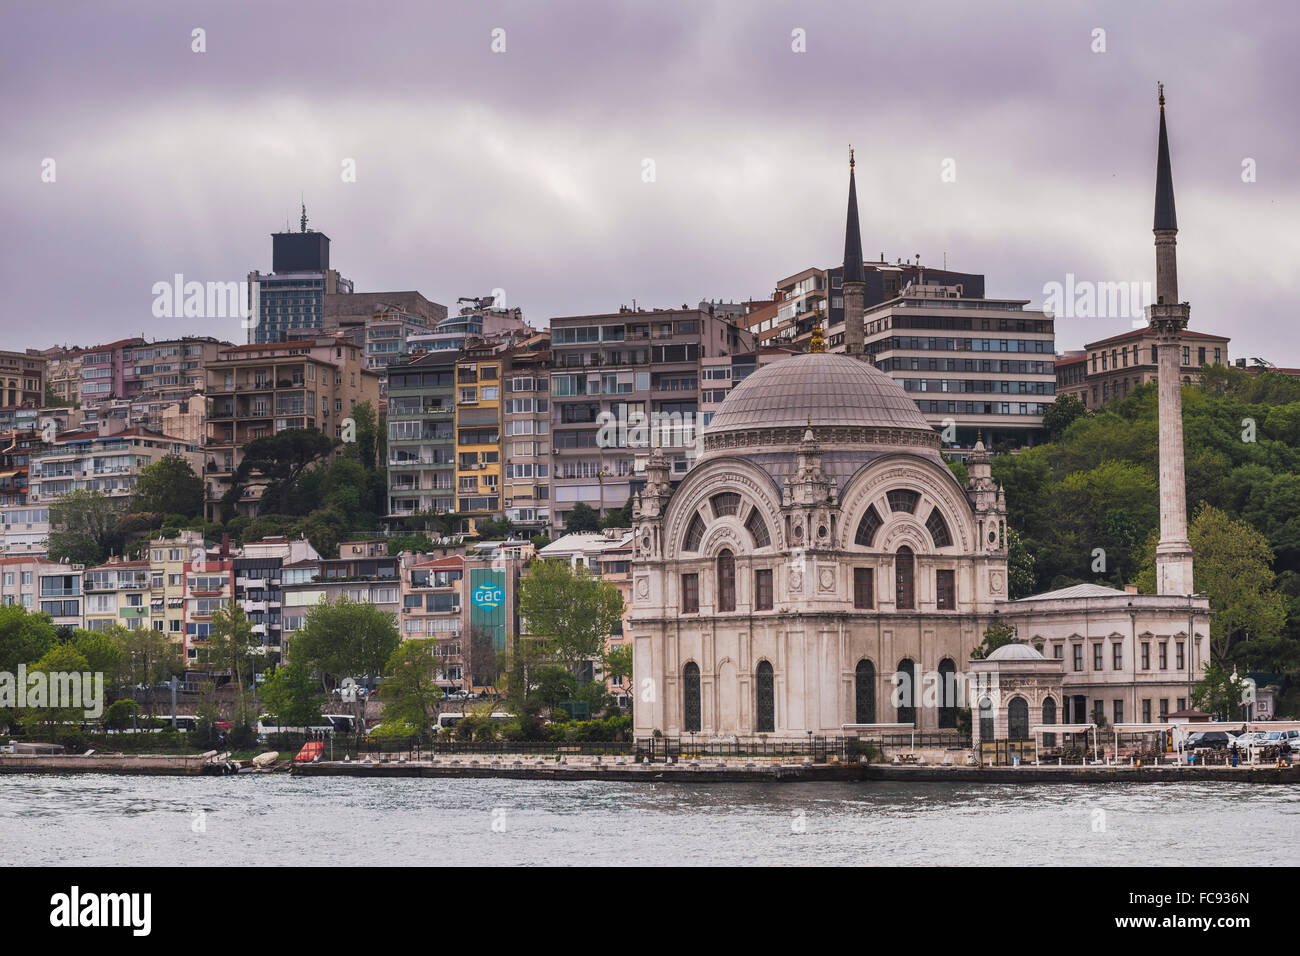 Mosque on the banks of the Bosphorus, Istanbul, Turkey, Europe - Stock Image